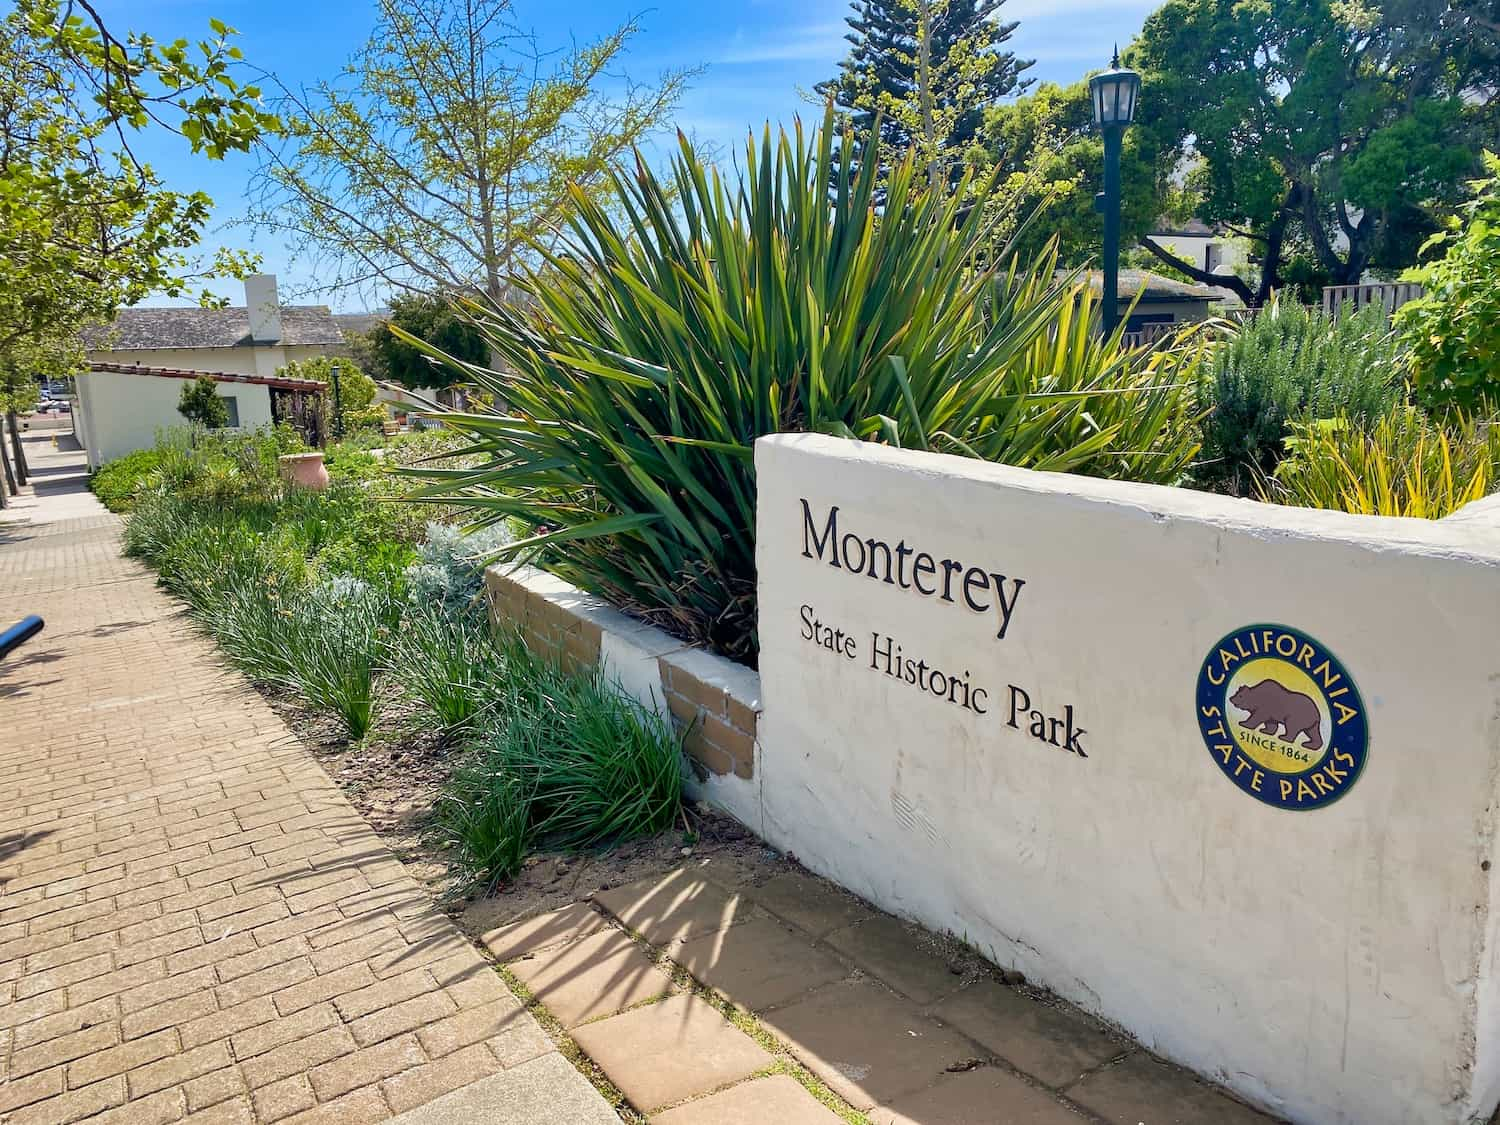 Sign for Monterey State Historic Park